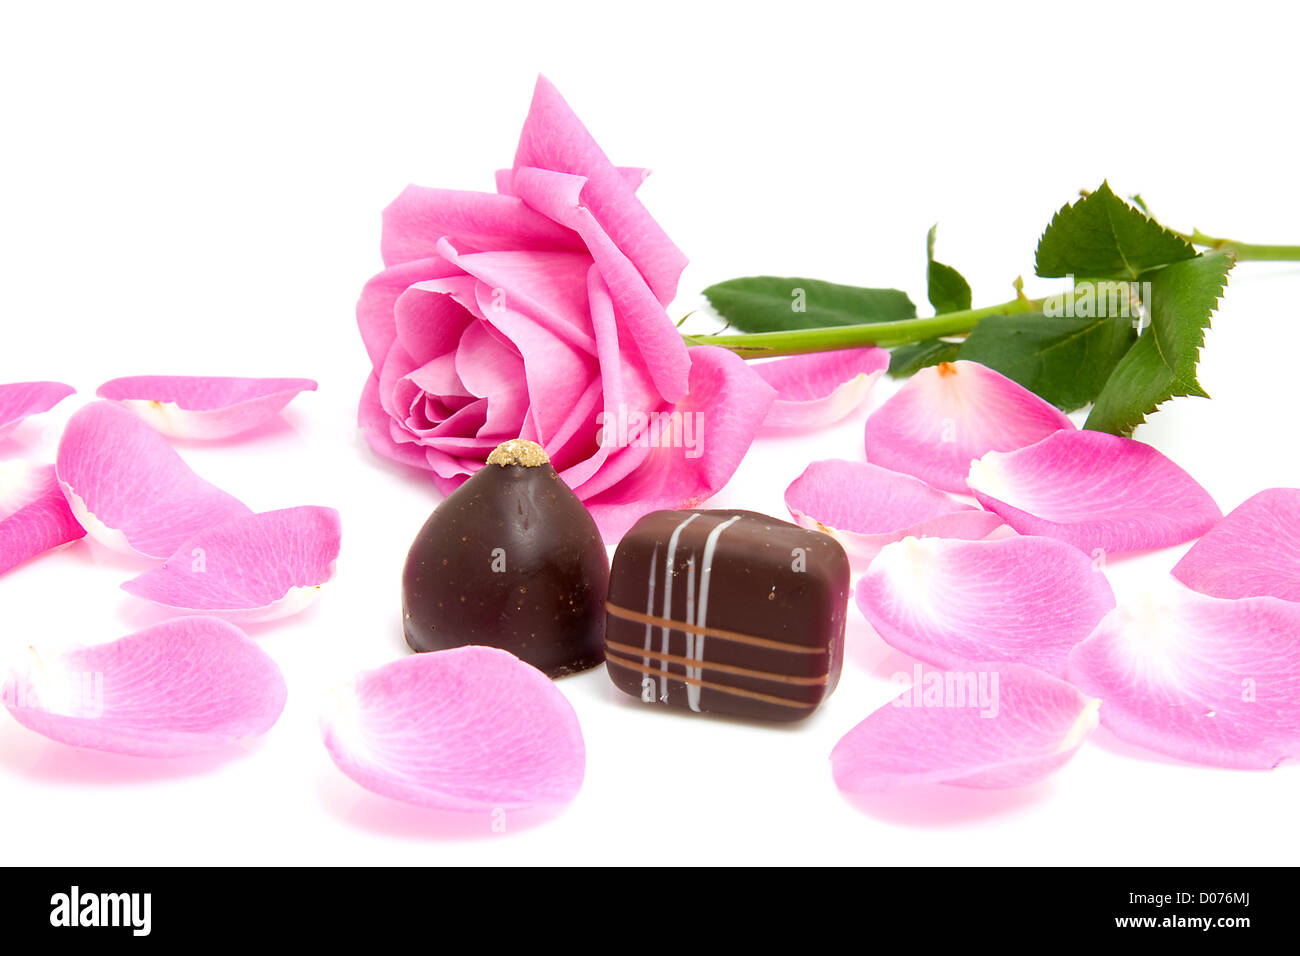 pink rose and leaves with chocolate bonbons for Valentine's day over white background - Stock Image